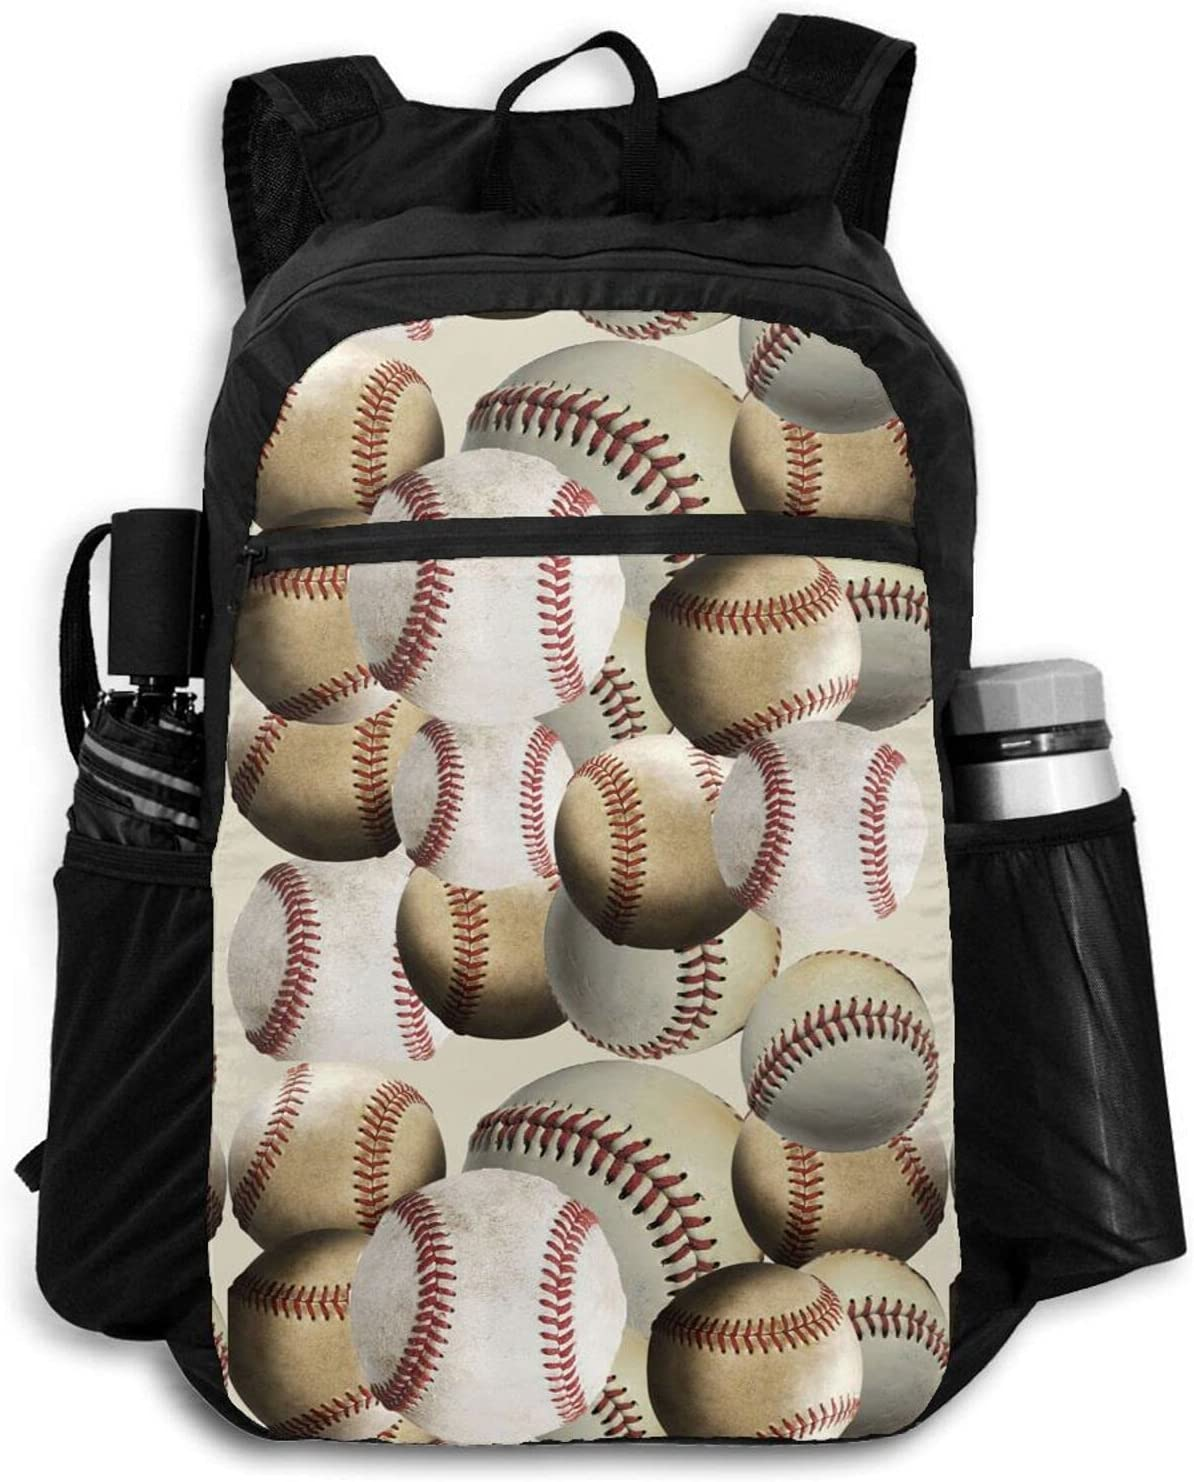 Zolama Sports Baseball Backpacks High order Dallas Mall for Day Women Packable Men Cute